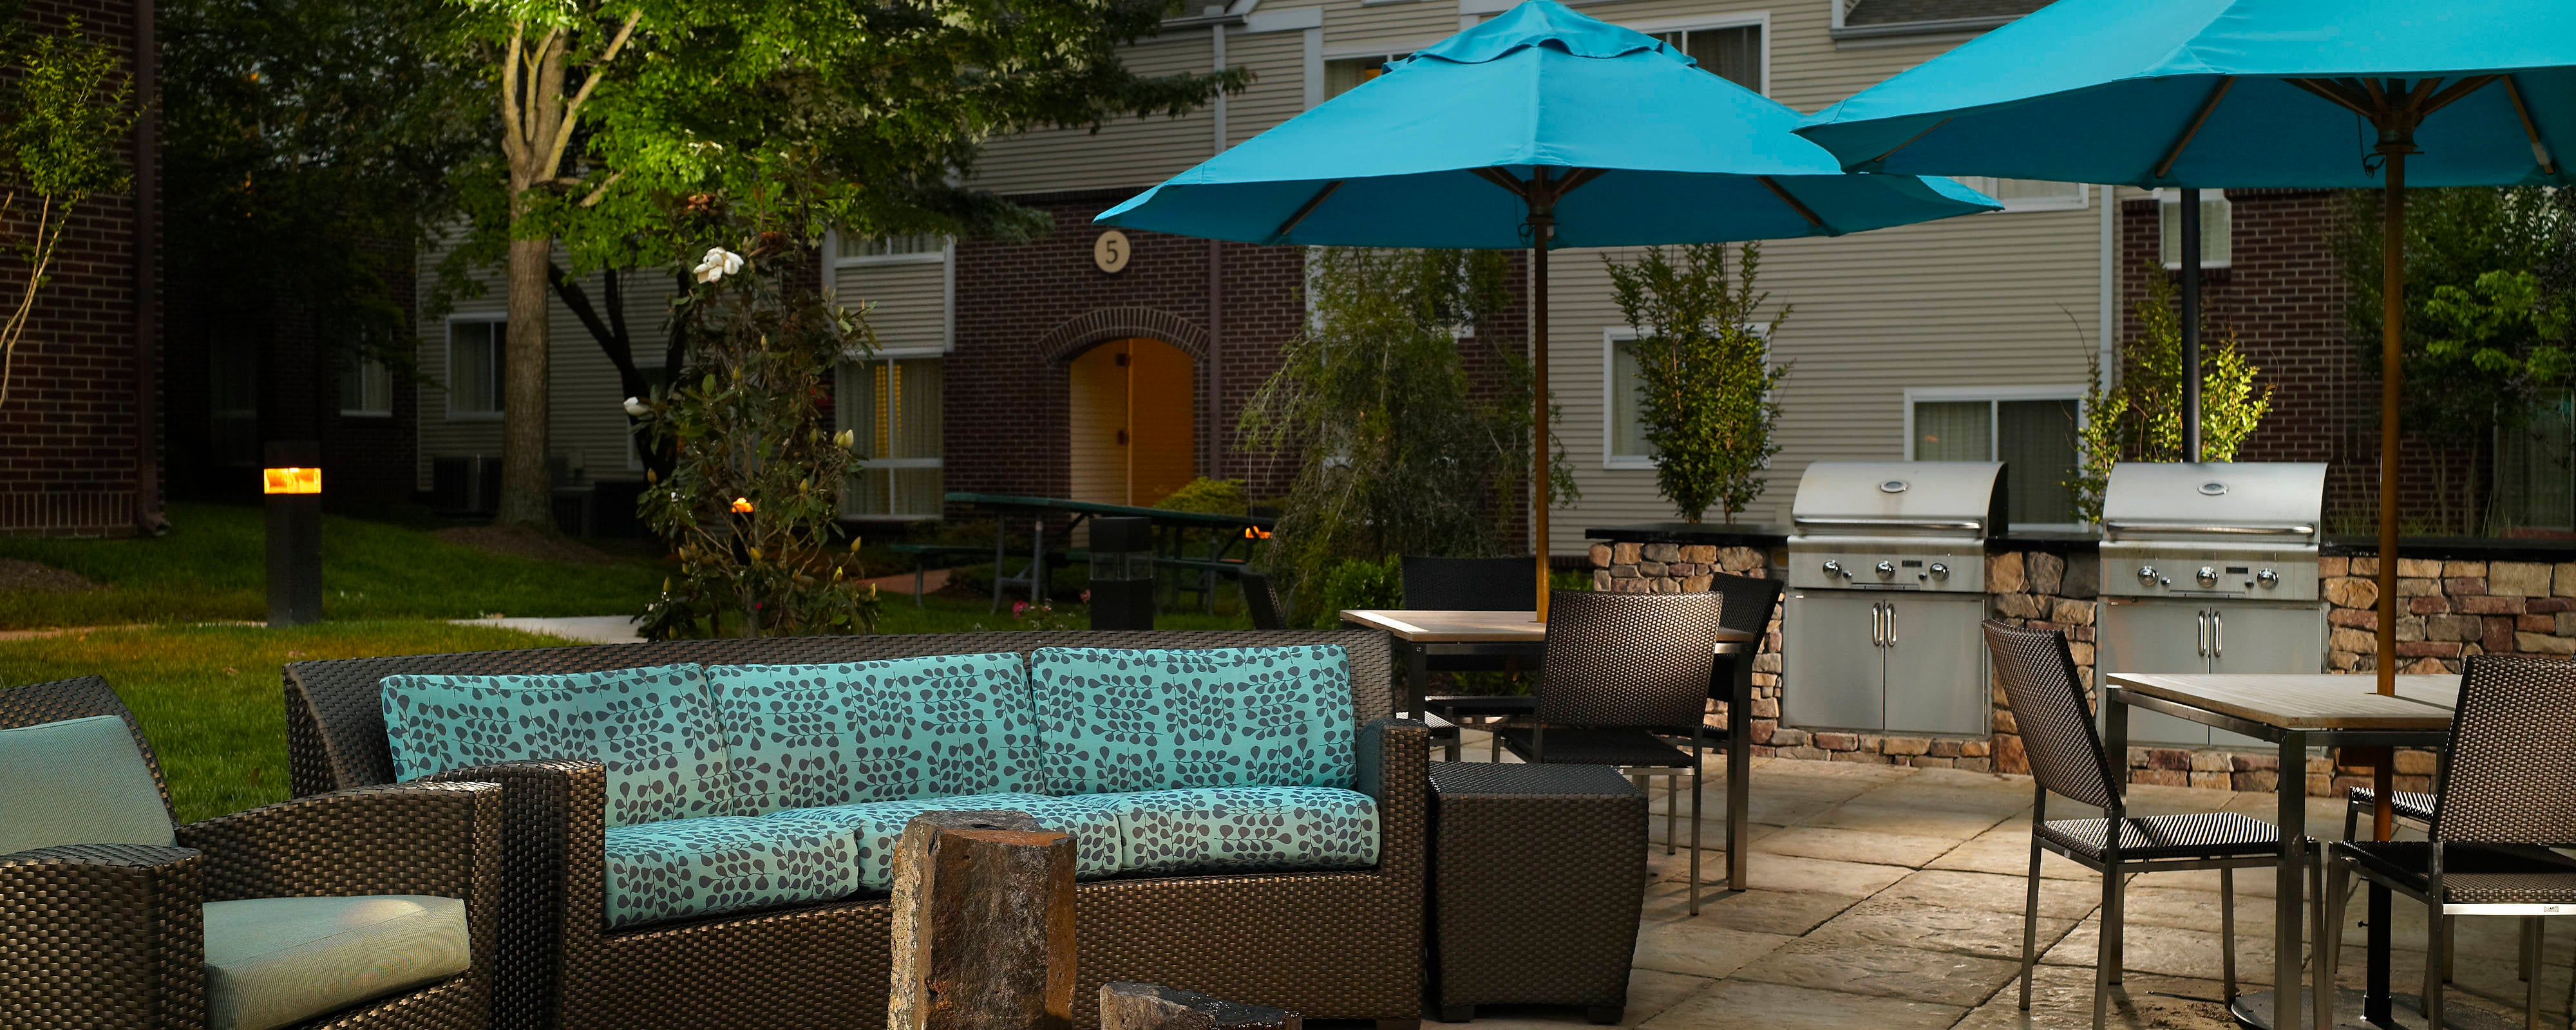 Patio del Residence Inn